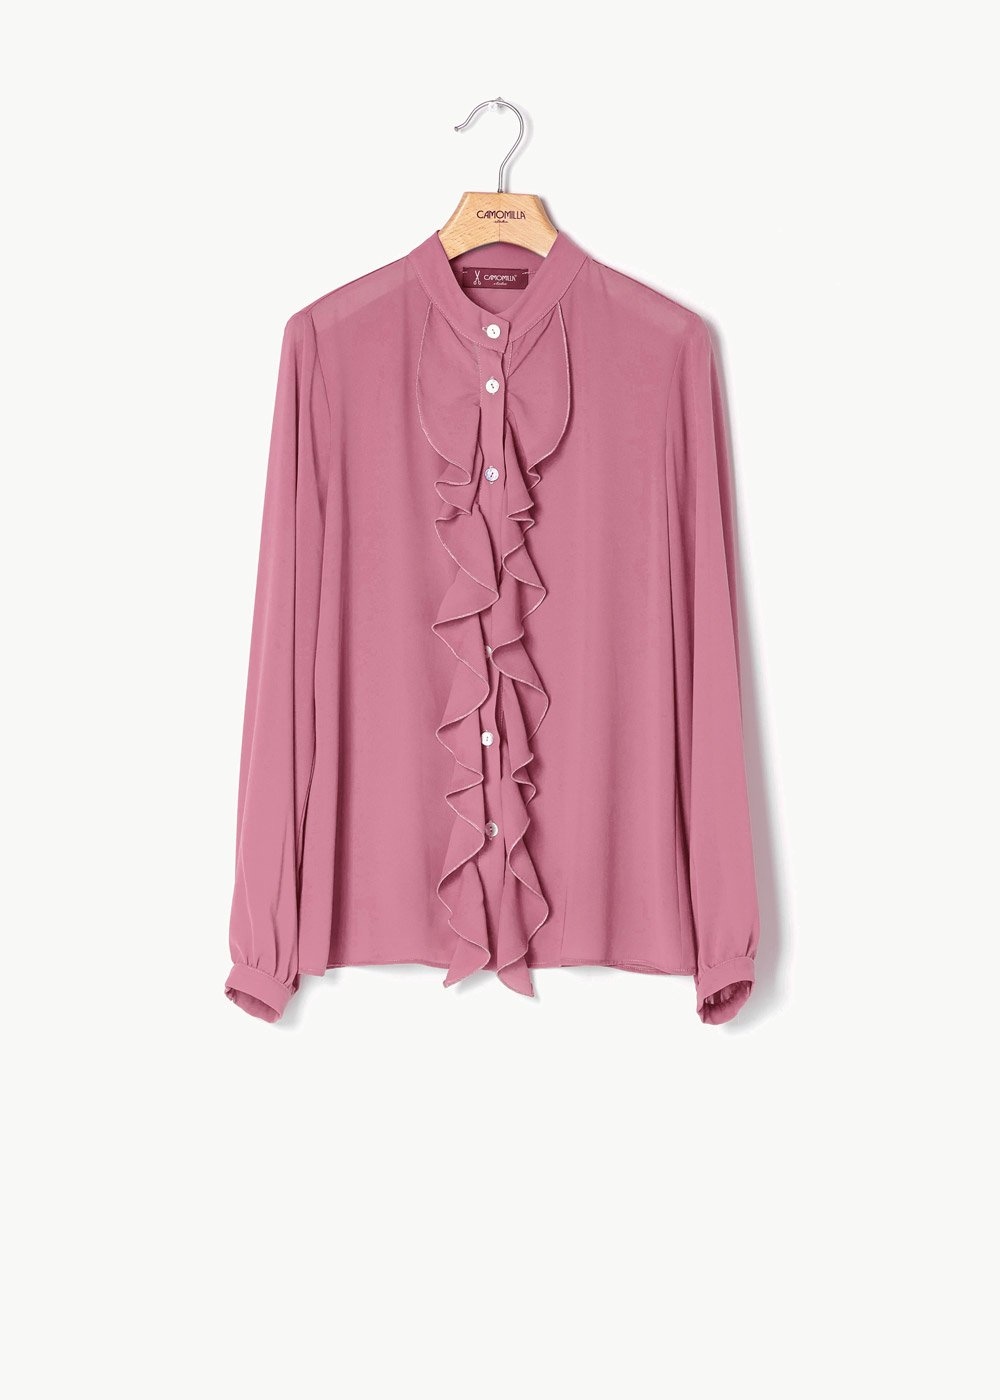 Caterina shirt with frills - Candy - Woman